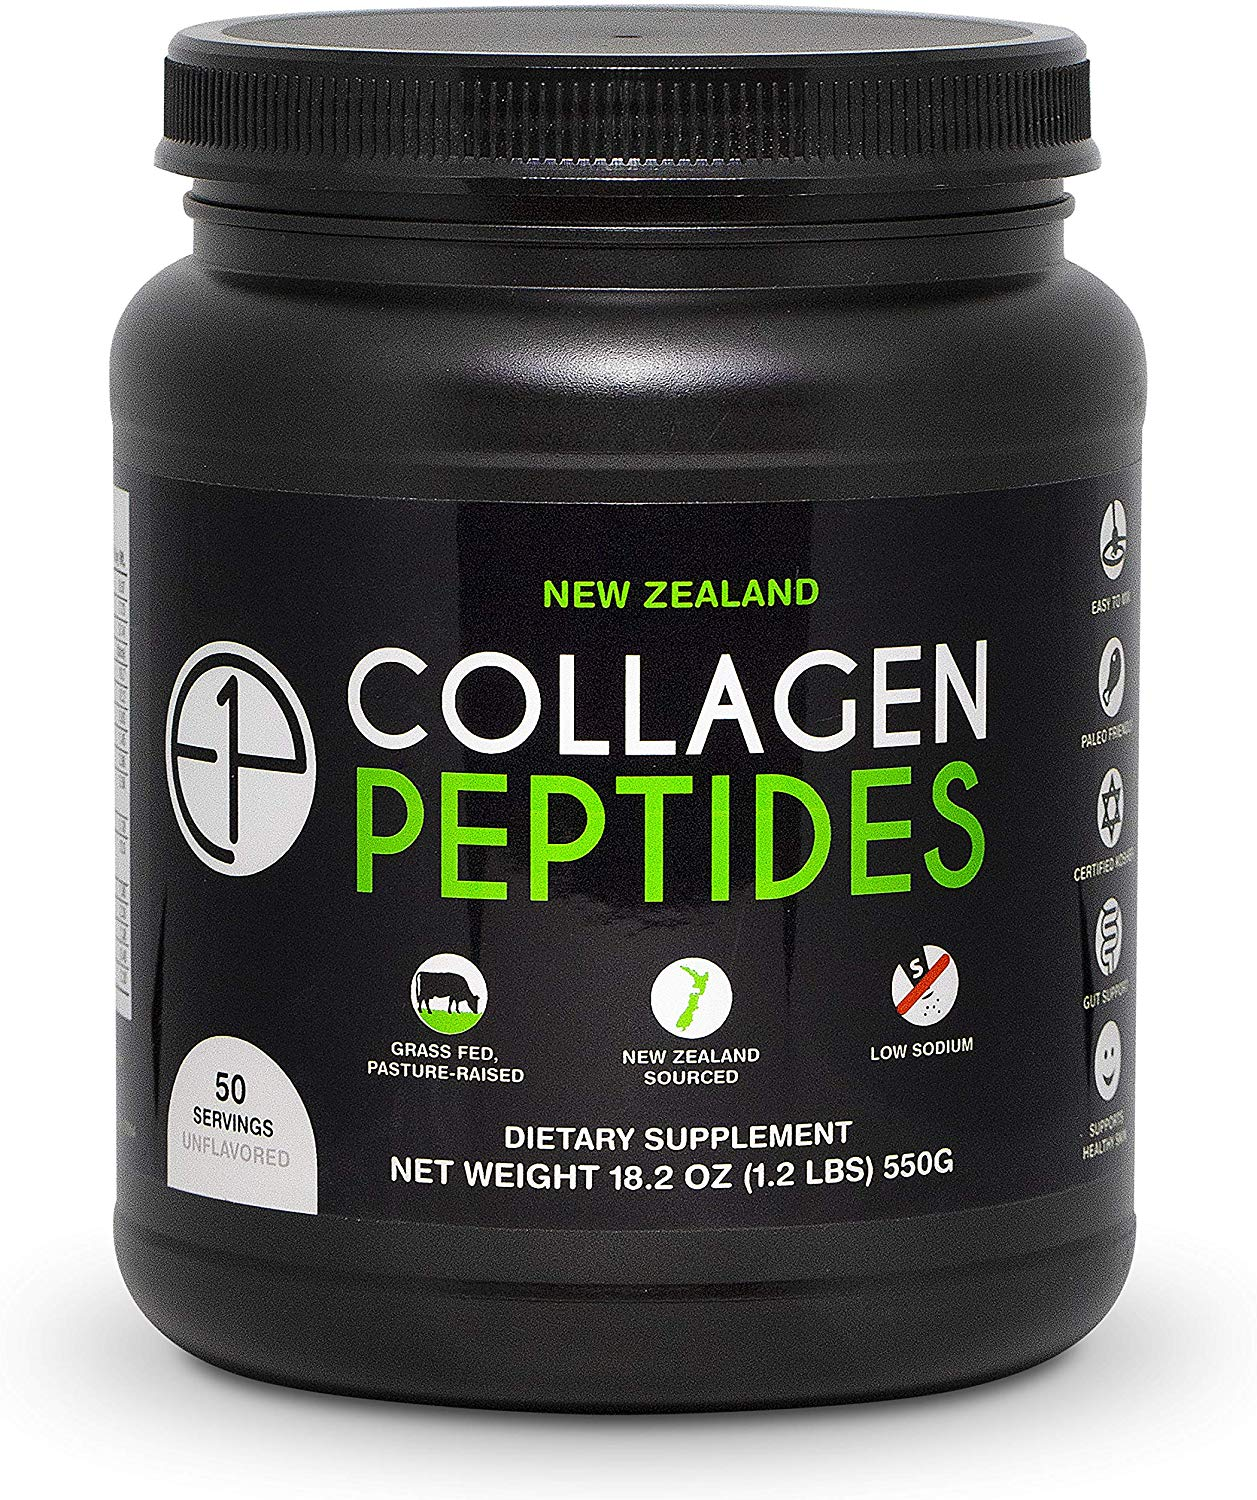 New Zealand Collagen Peptides Powder